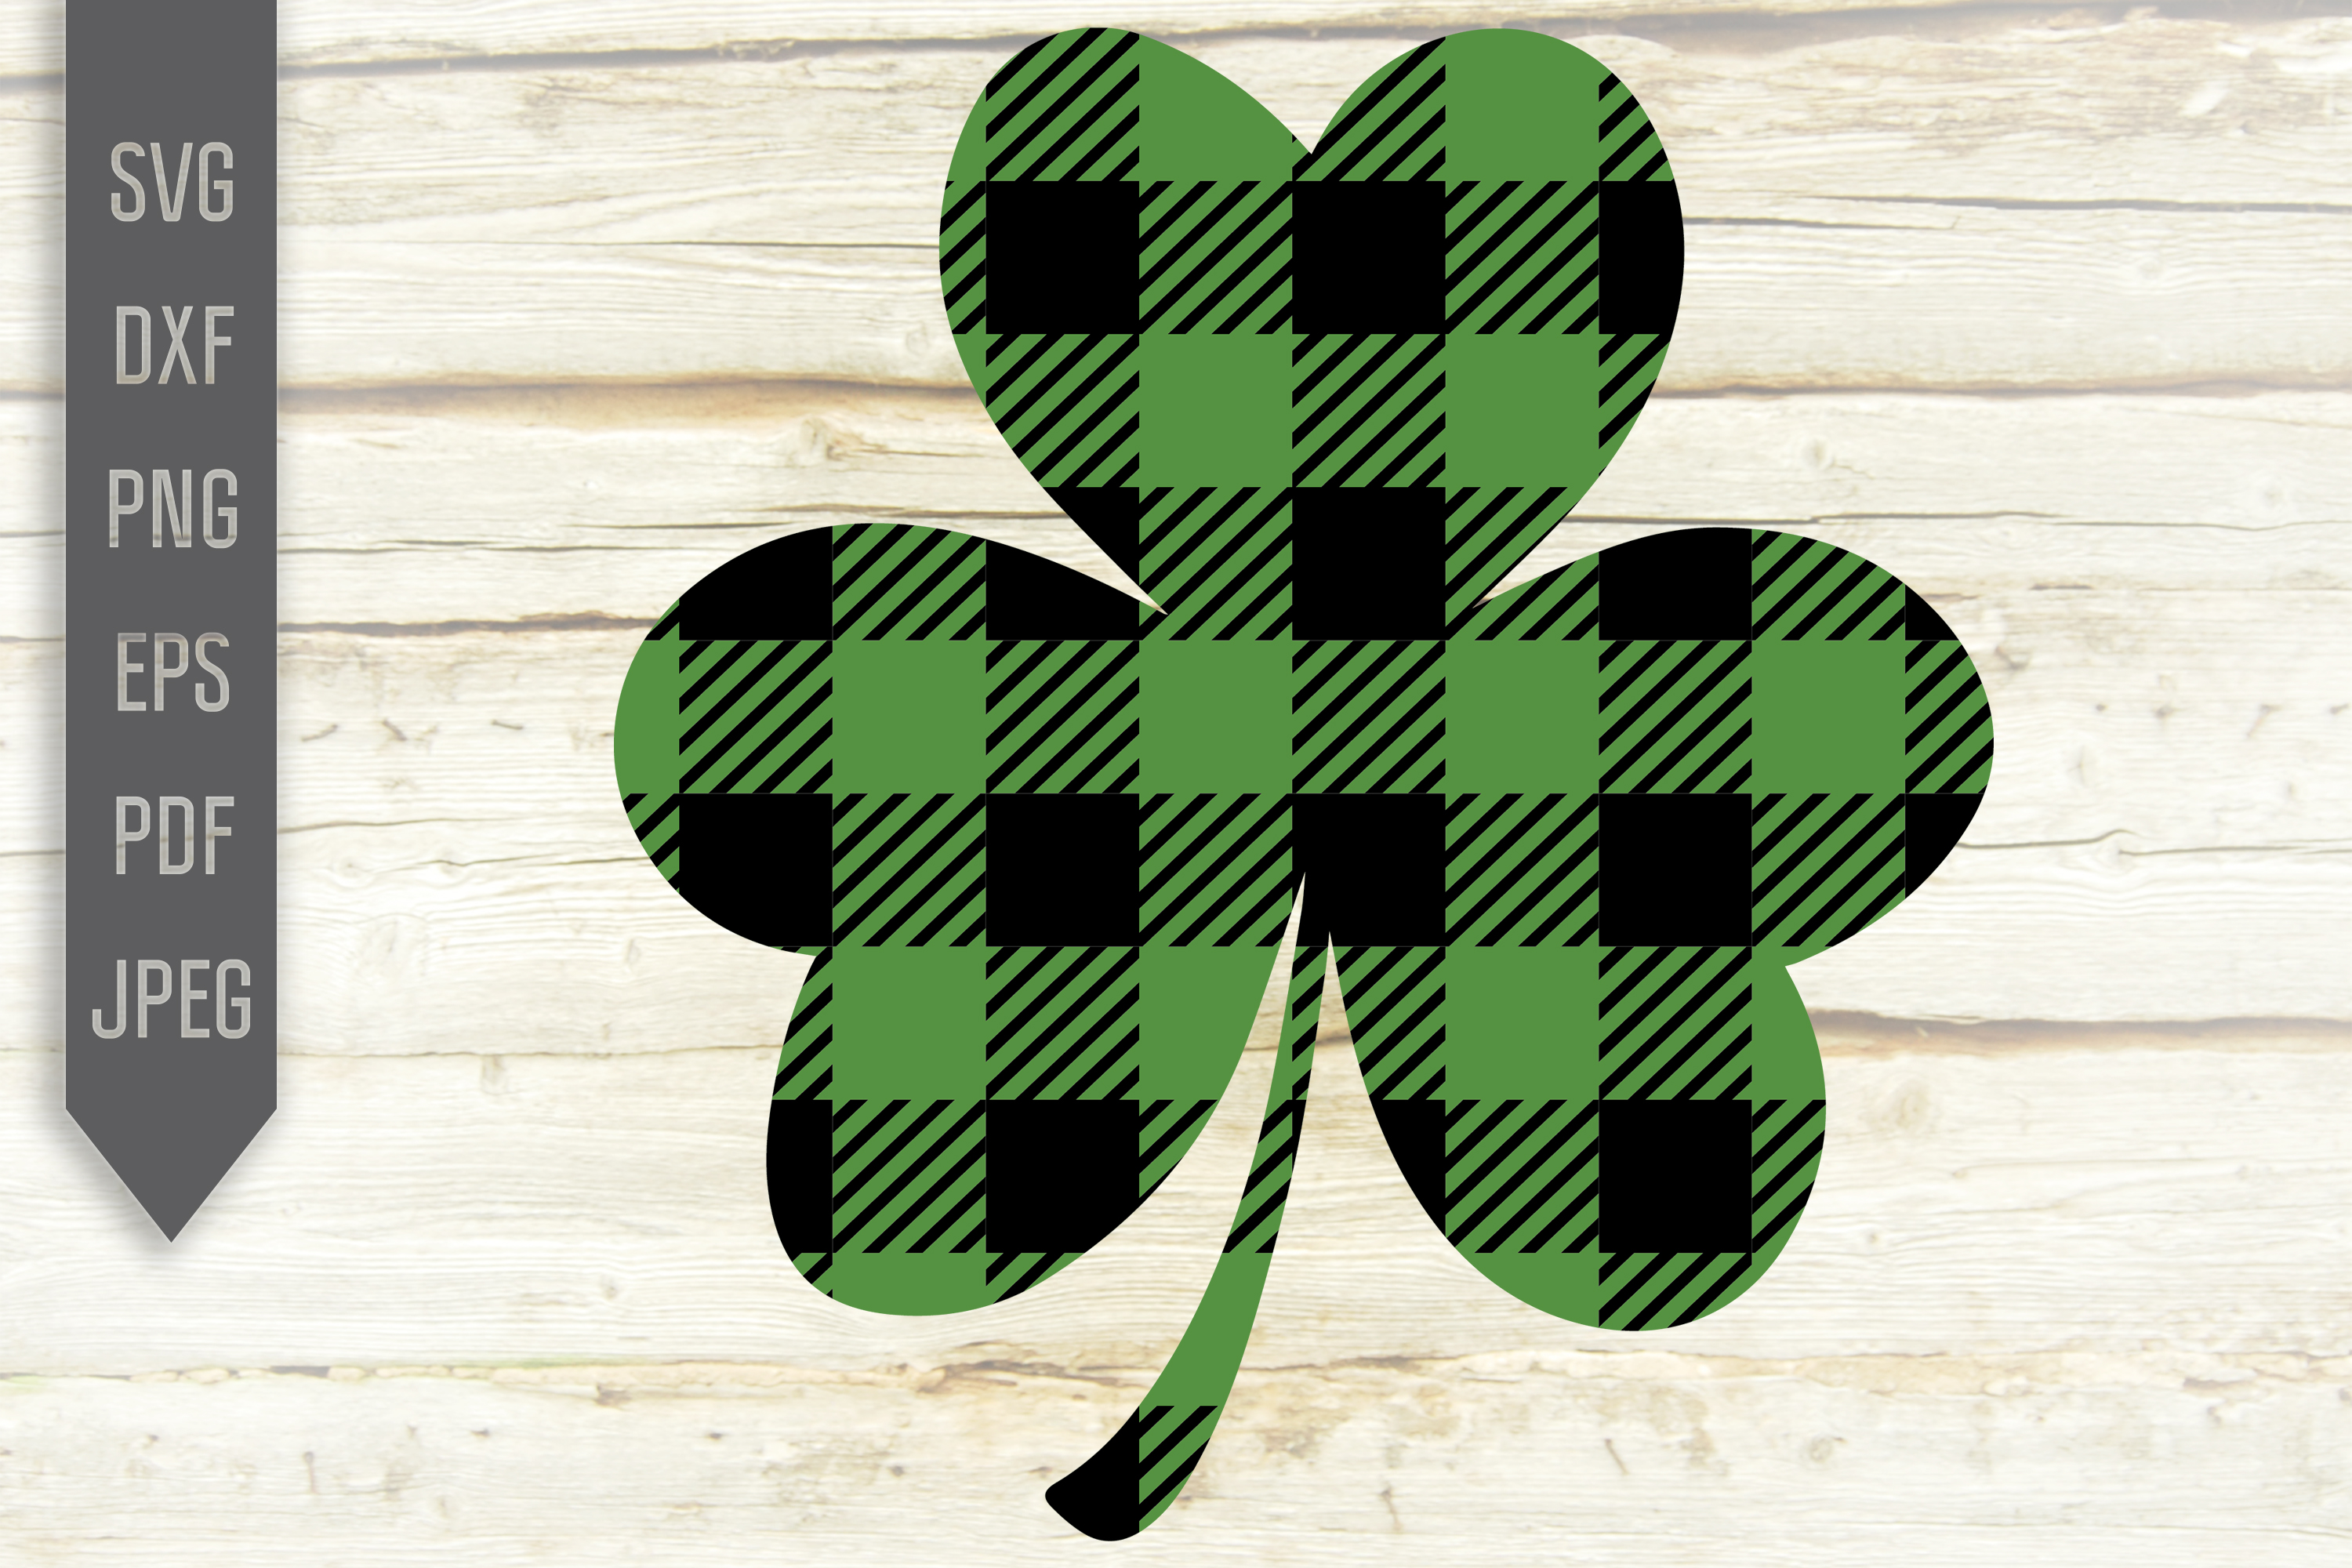 Download Free Buffal Plaid Shamrock Graphic By Svglaboratory Creative Fabrica for Cricut Explore, Silhouette and other cutting machines.